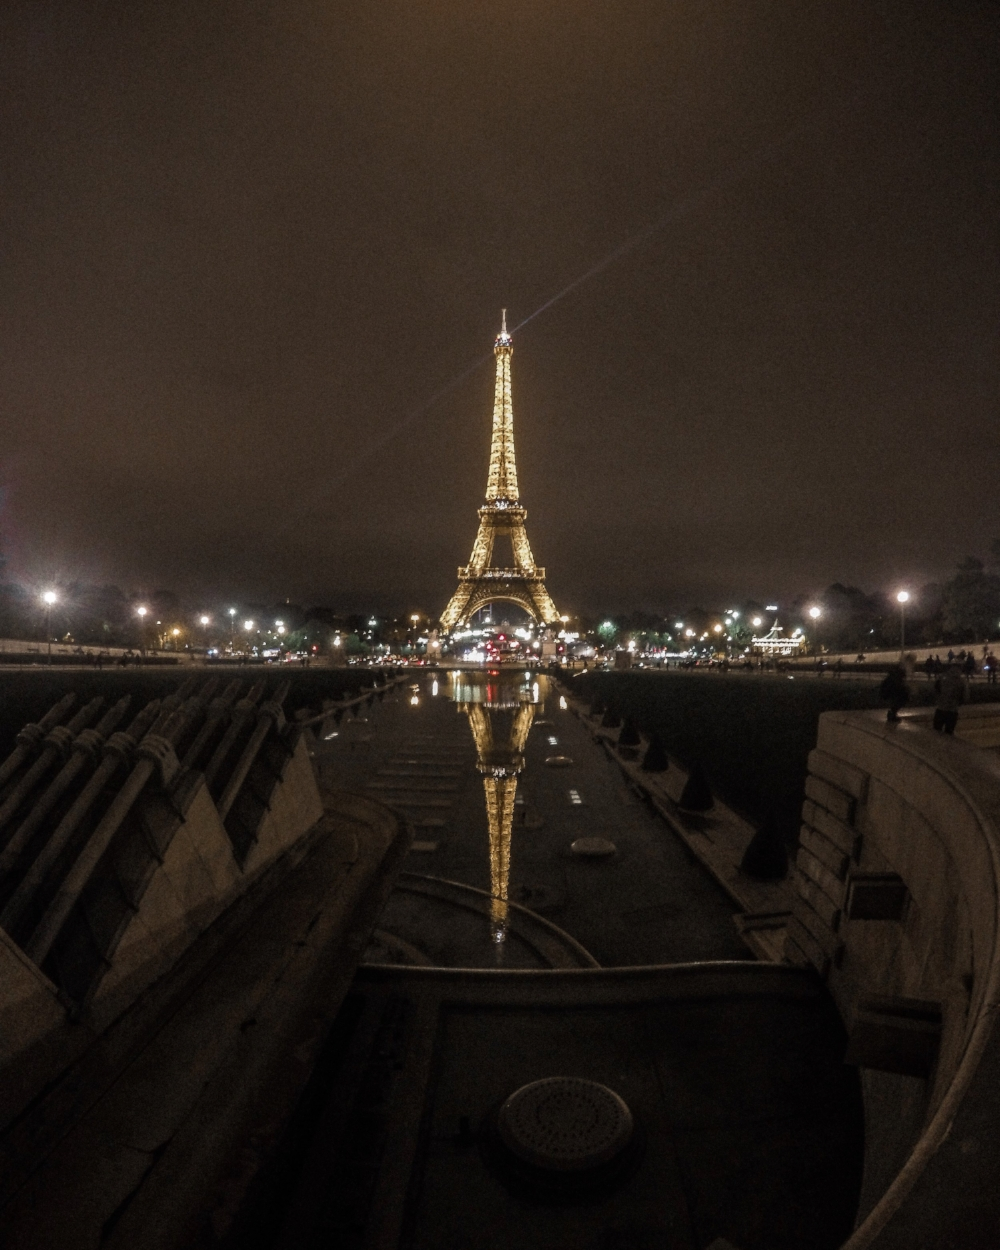 eiffel_tower_tips_for_new_travelers